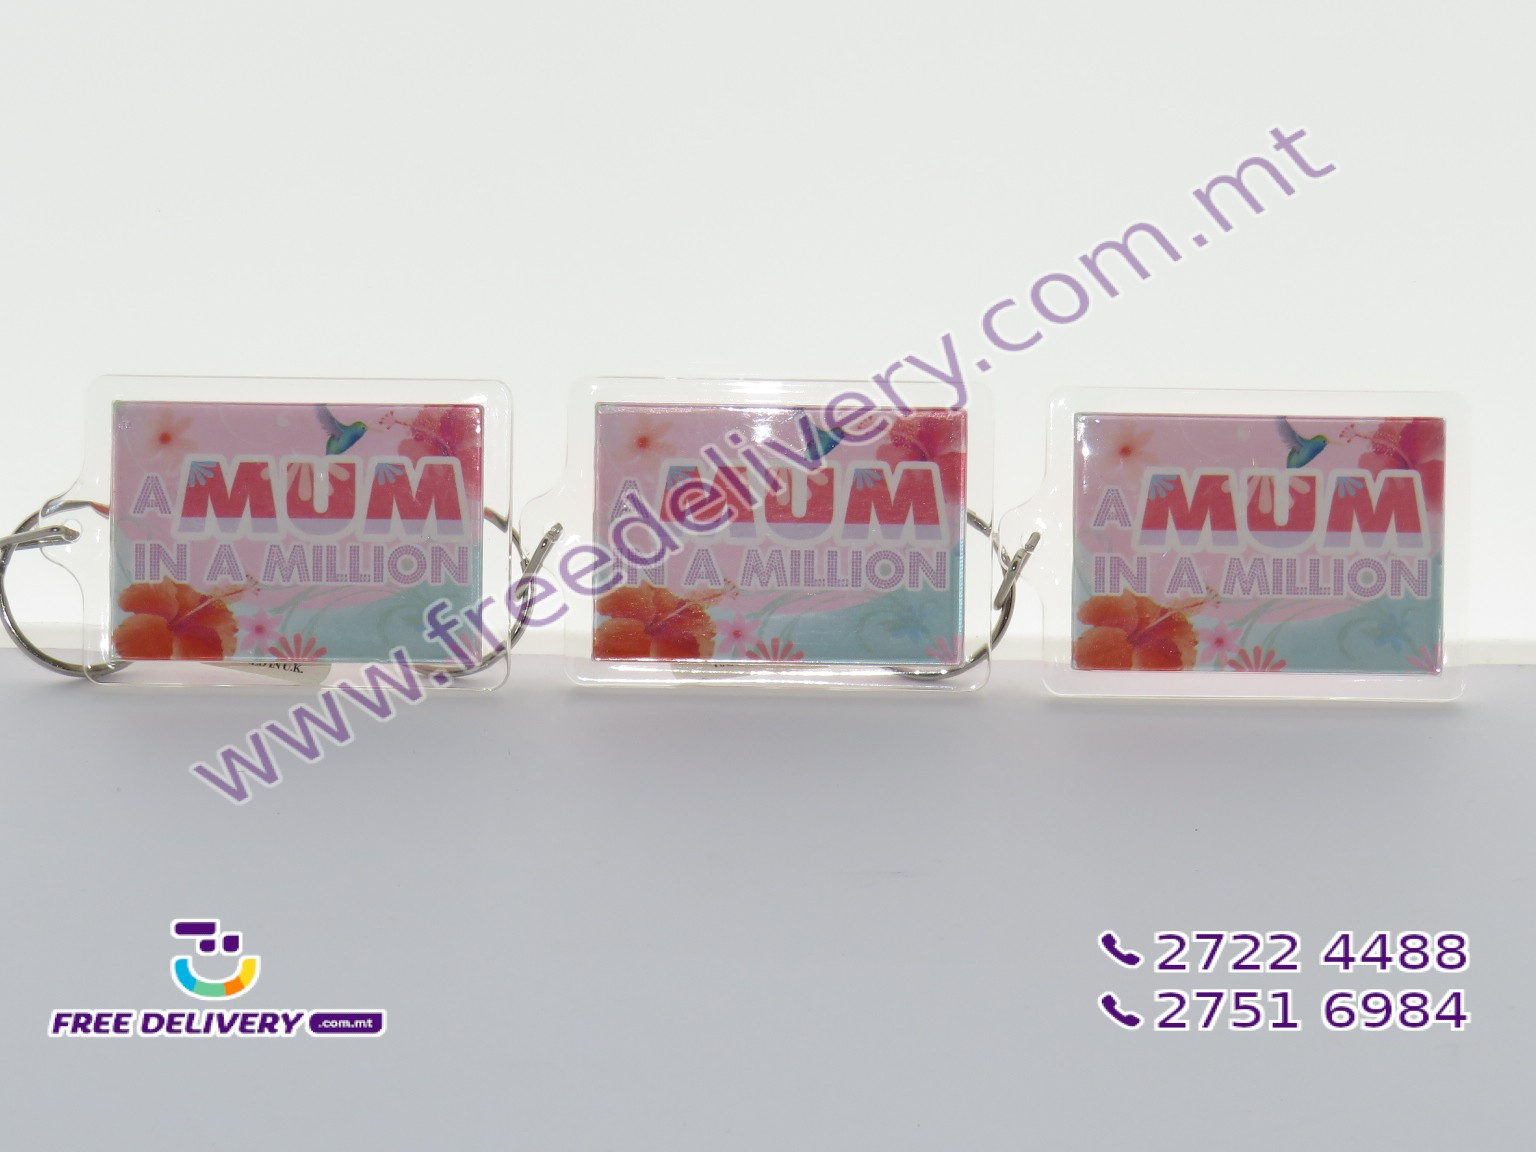 A MUM IN A MILLION KEYCHAIN 6 X 4.5CM – MISC066553